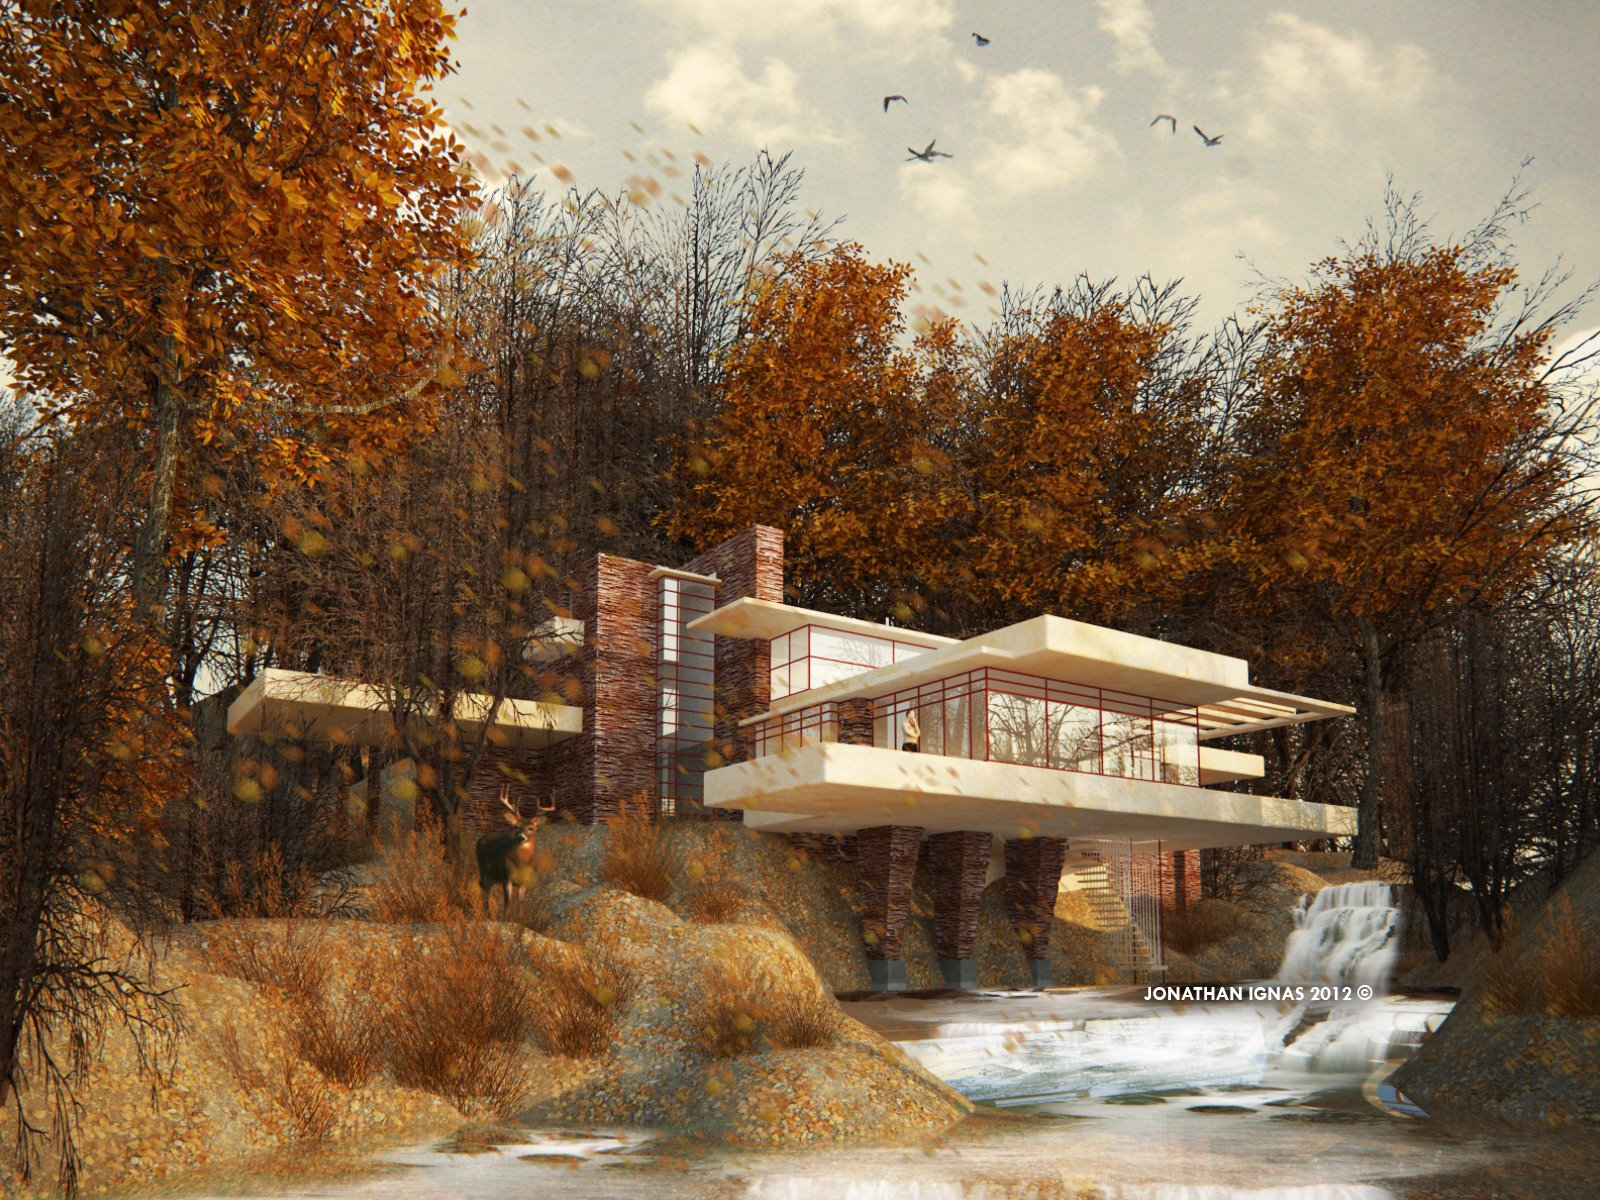 Frank Lloyd Wright Falling Water Wallpaper Sketchup Texture Falling Water House Challenge Top 15